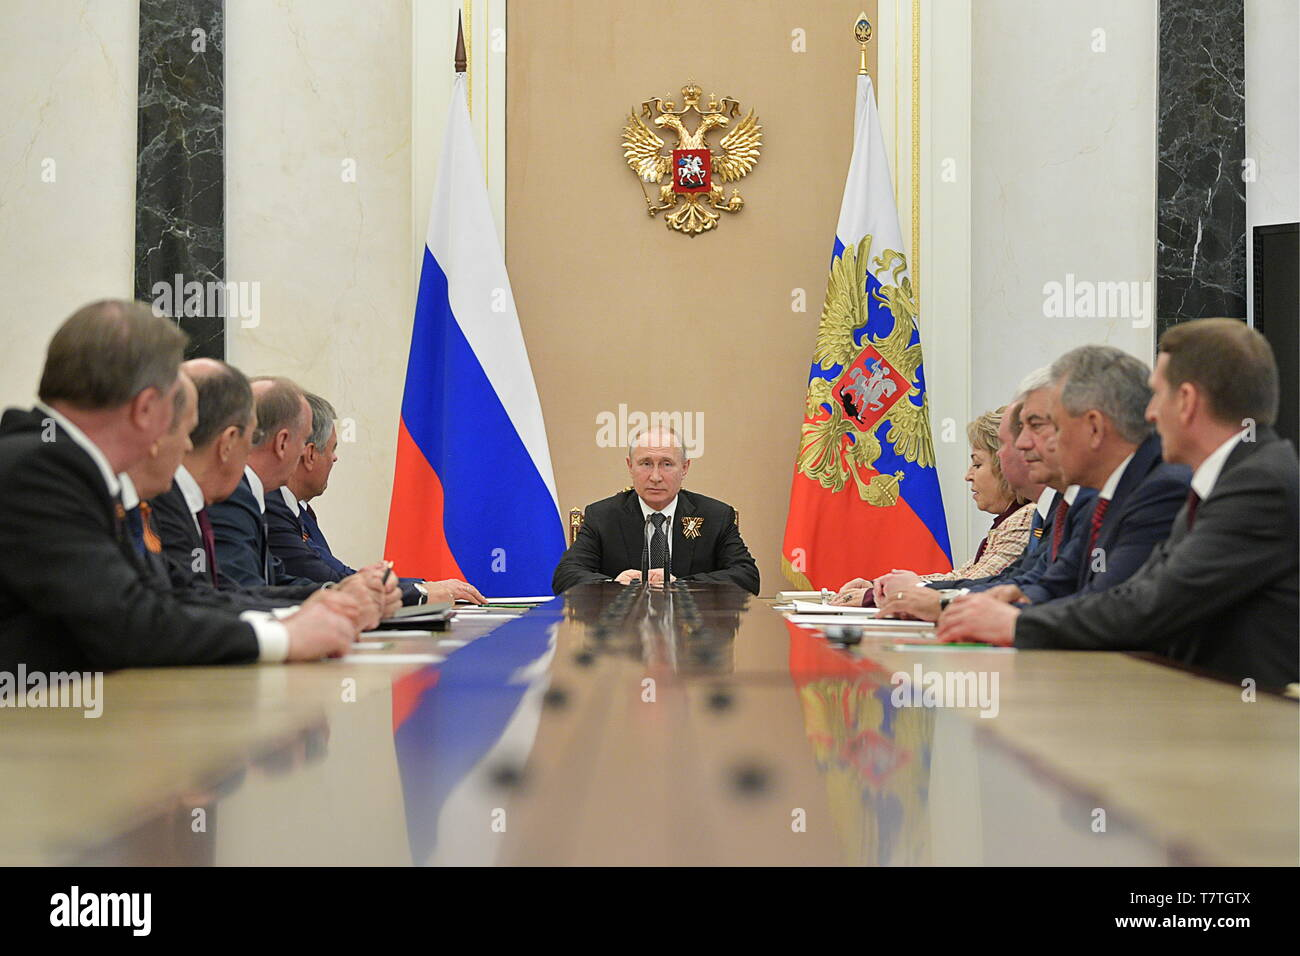 Moscow, Russia. 09th May, 2019. MOSCOW, RUSSIA - MAY 9, 2019: Russia's President Vladimir Putin (C) during a meeting with permanent members of the Russian Security Council at the Moscow Kremlin. Alexei Druzhinin/Russian Presidential Press and Information Office/TASS Credit: ITAR-TASS News Agency/Alamy Live News - Stock Image